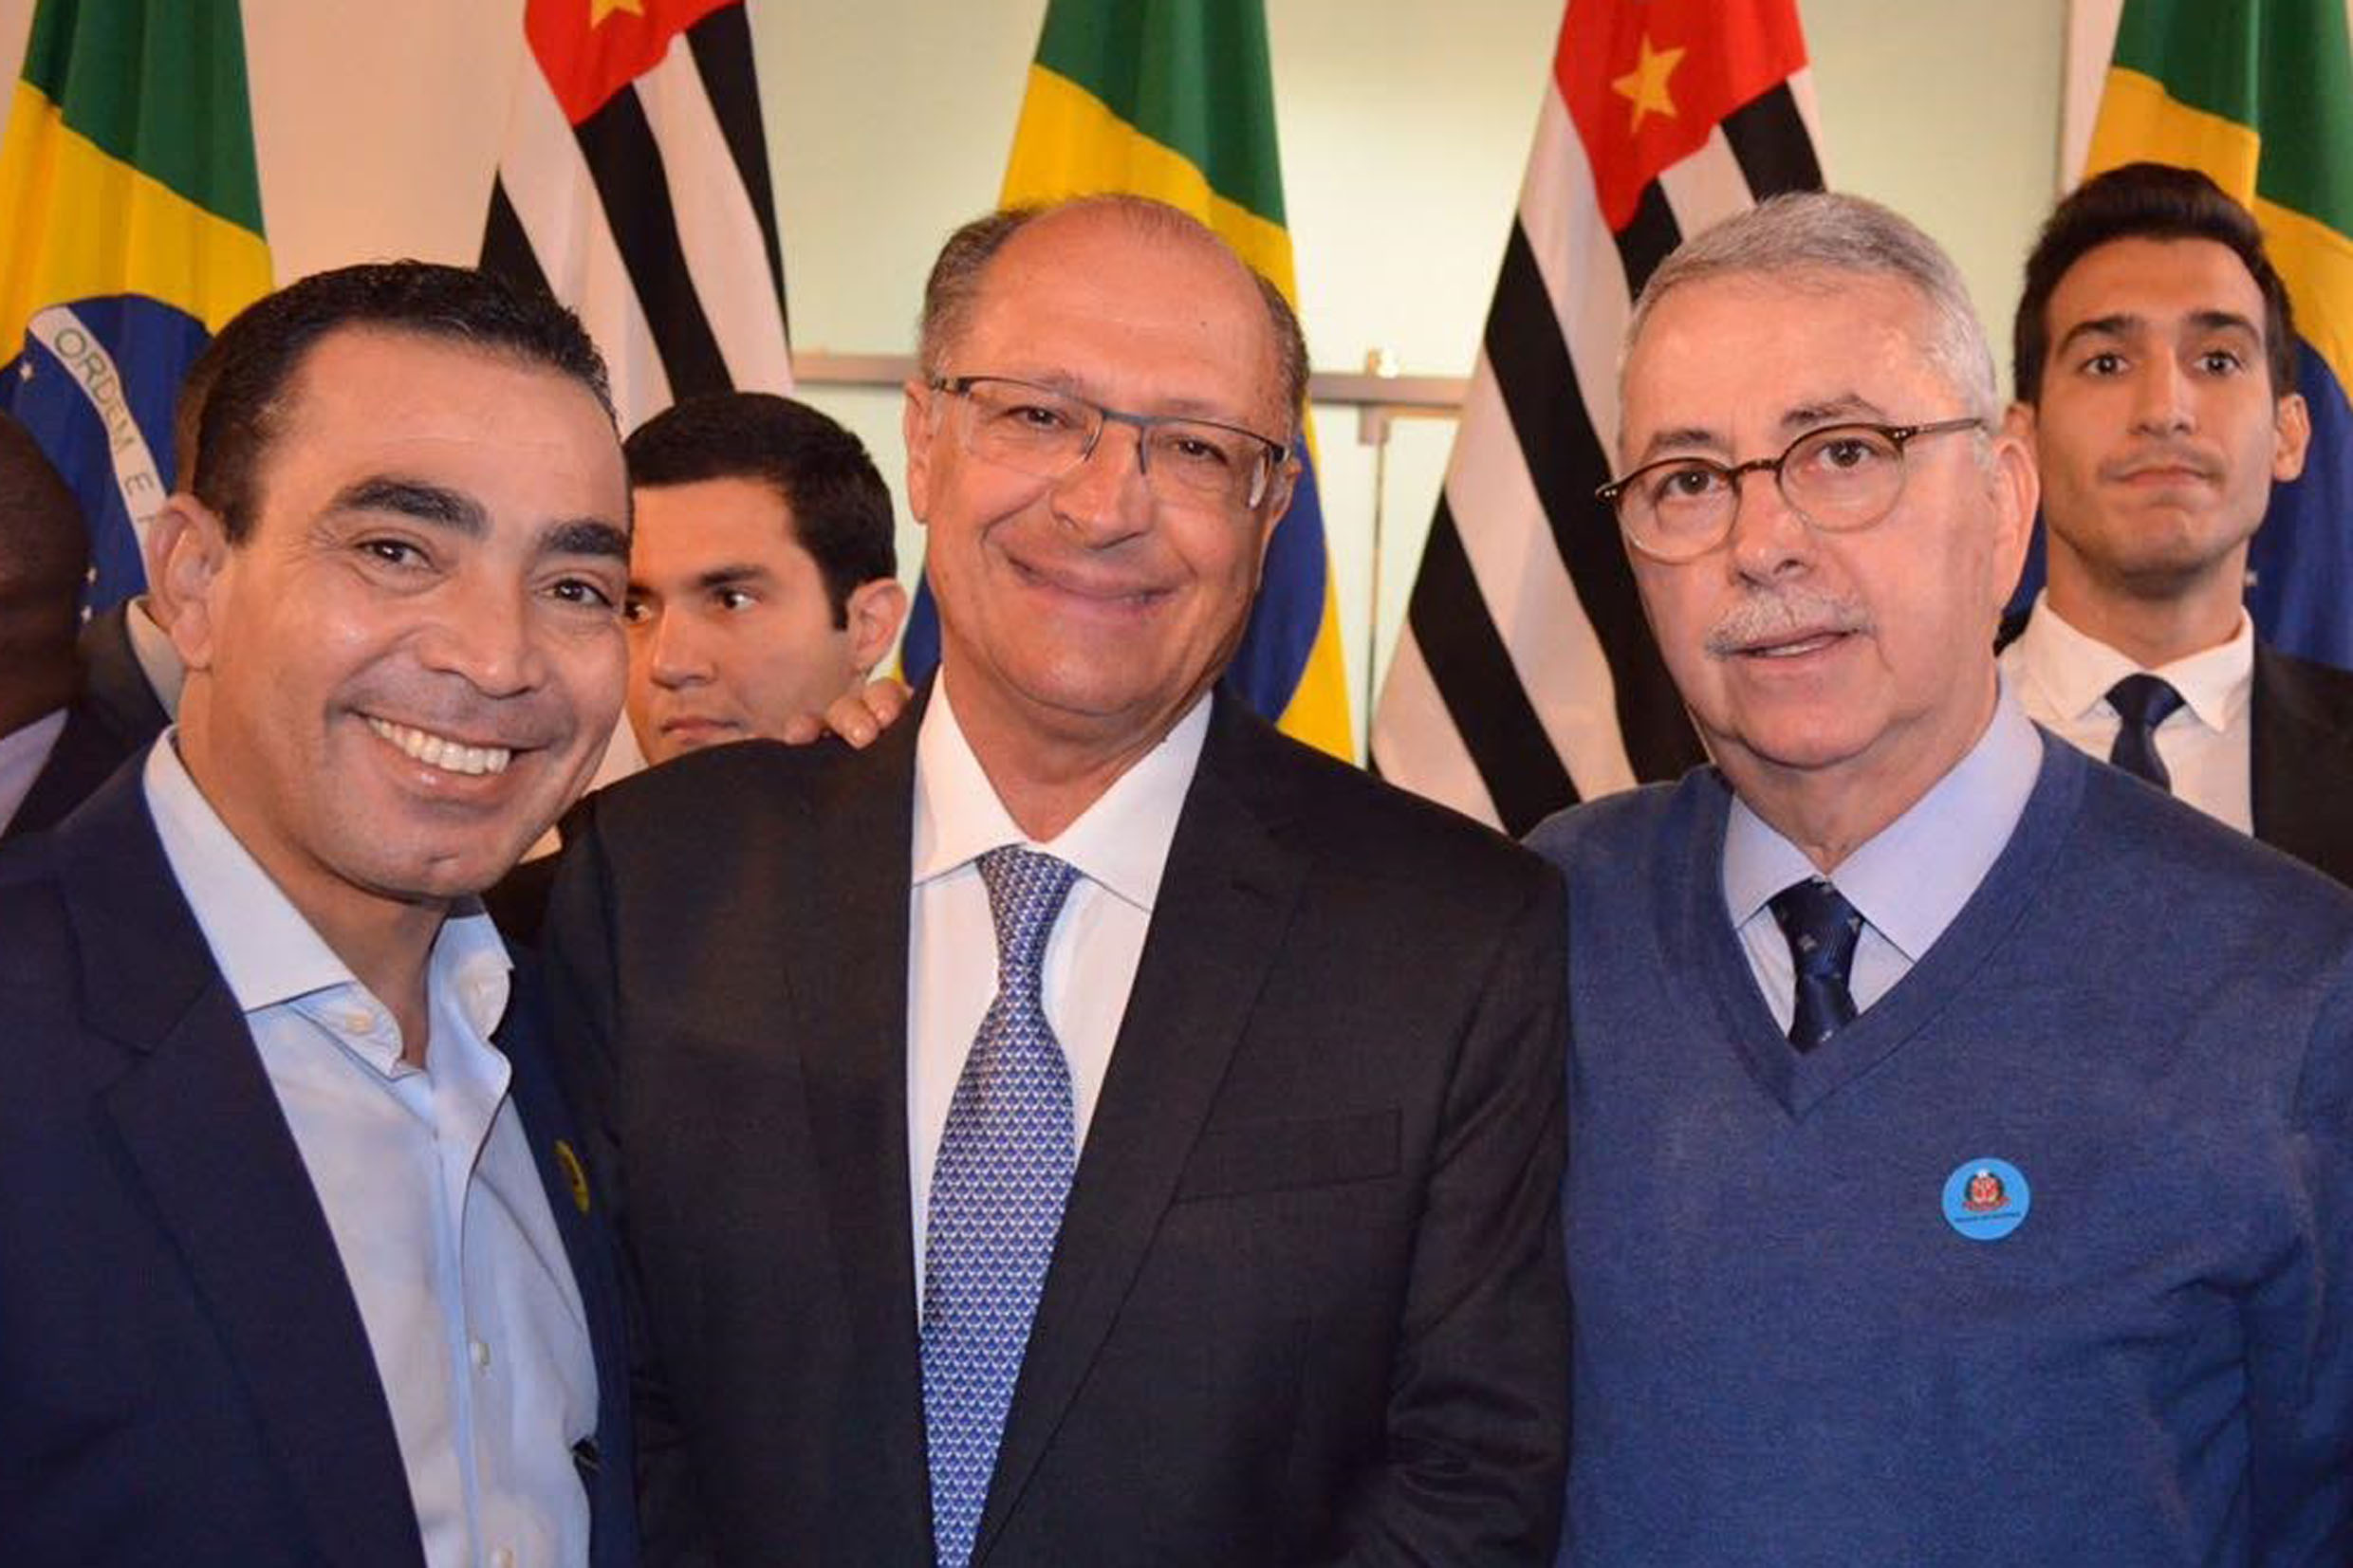 Benjamin Bill, Geraldo Alckmin e Chico Sardelli<a style='float:right' href='https://www3.al.sp.gov.br/repositorio/noticia/N-06-2017/fg204441.jpg' target=_blank><img src='/_img/material-file-download-white.png' width='14px' alt='Clique para baixar a imagem'></a>